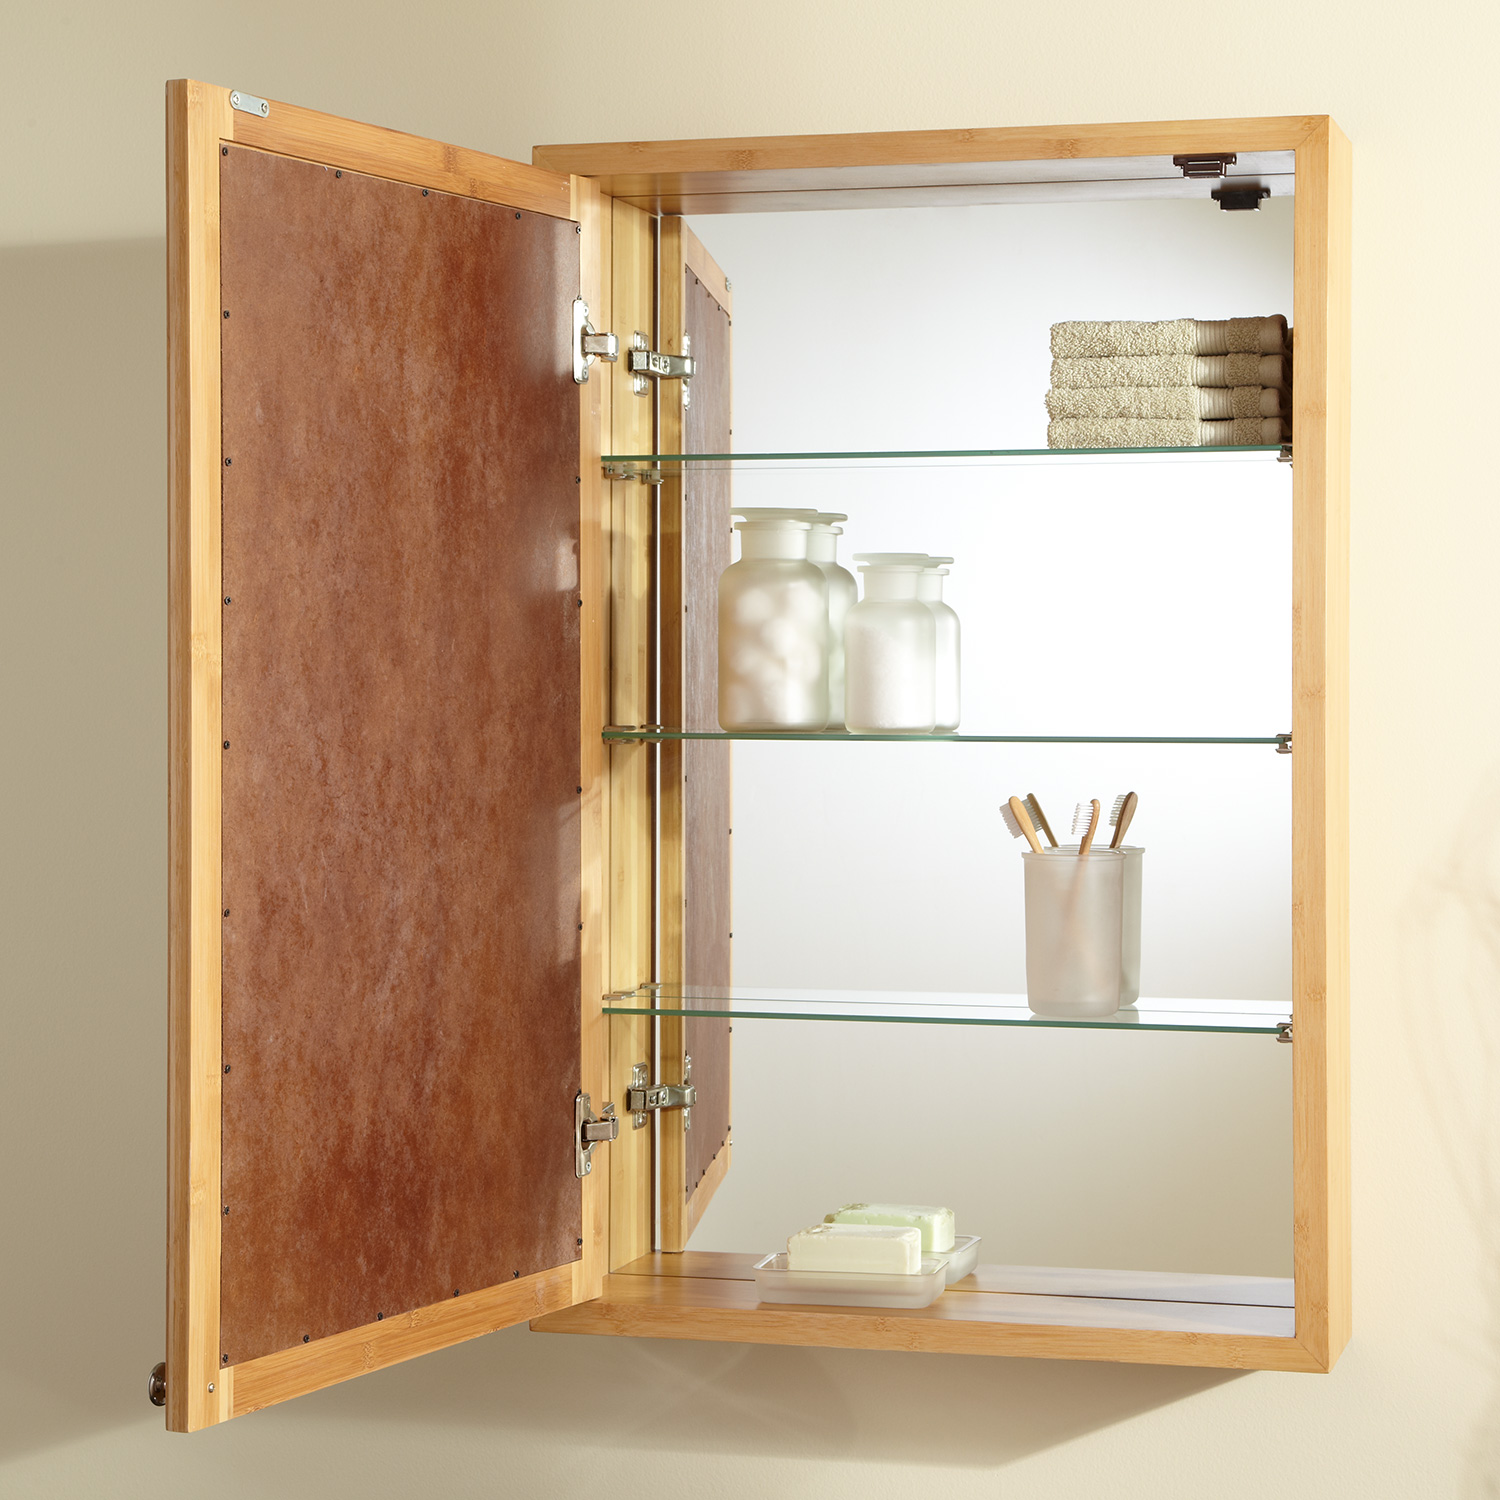 rustic wooden medicine cabinet mounted wall